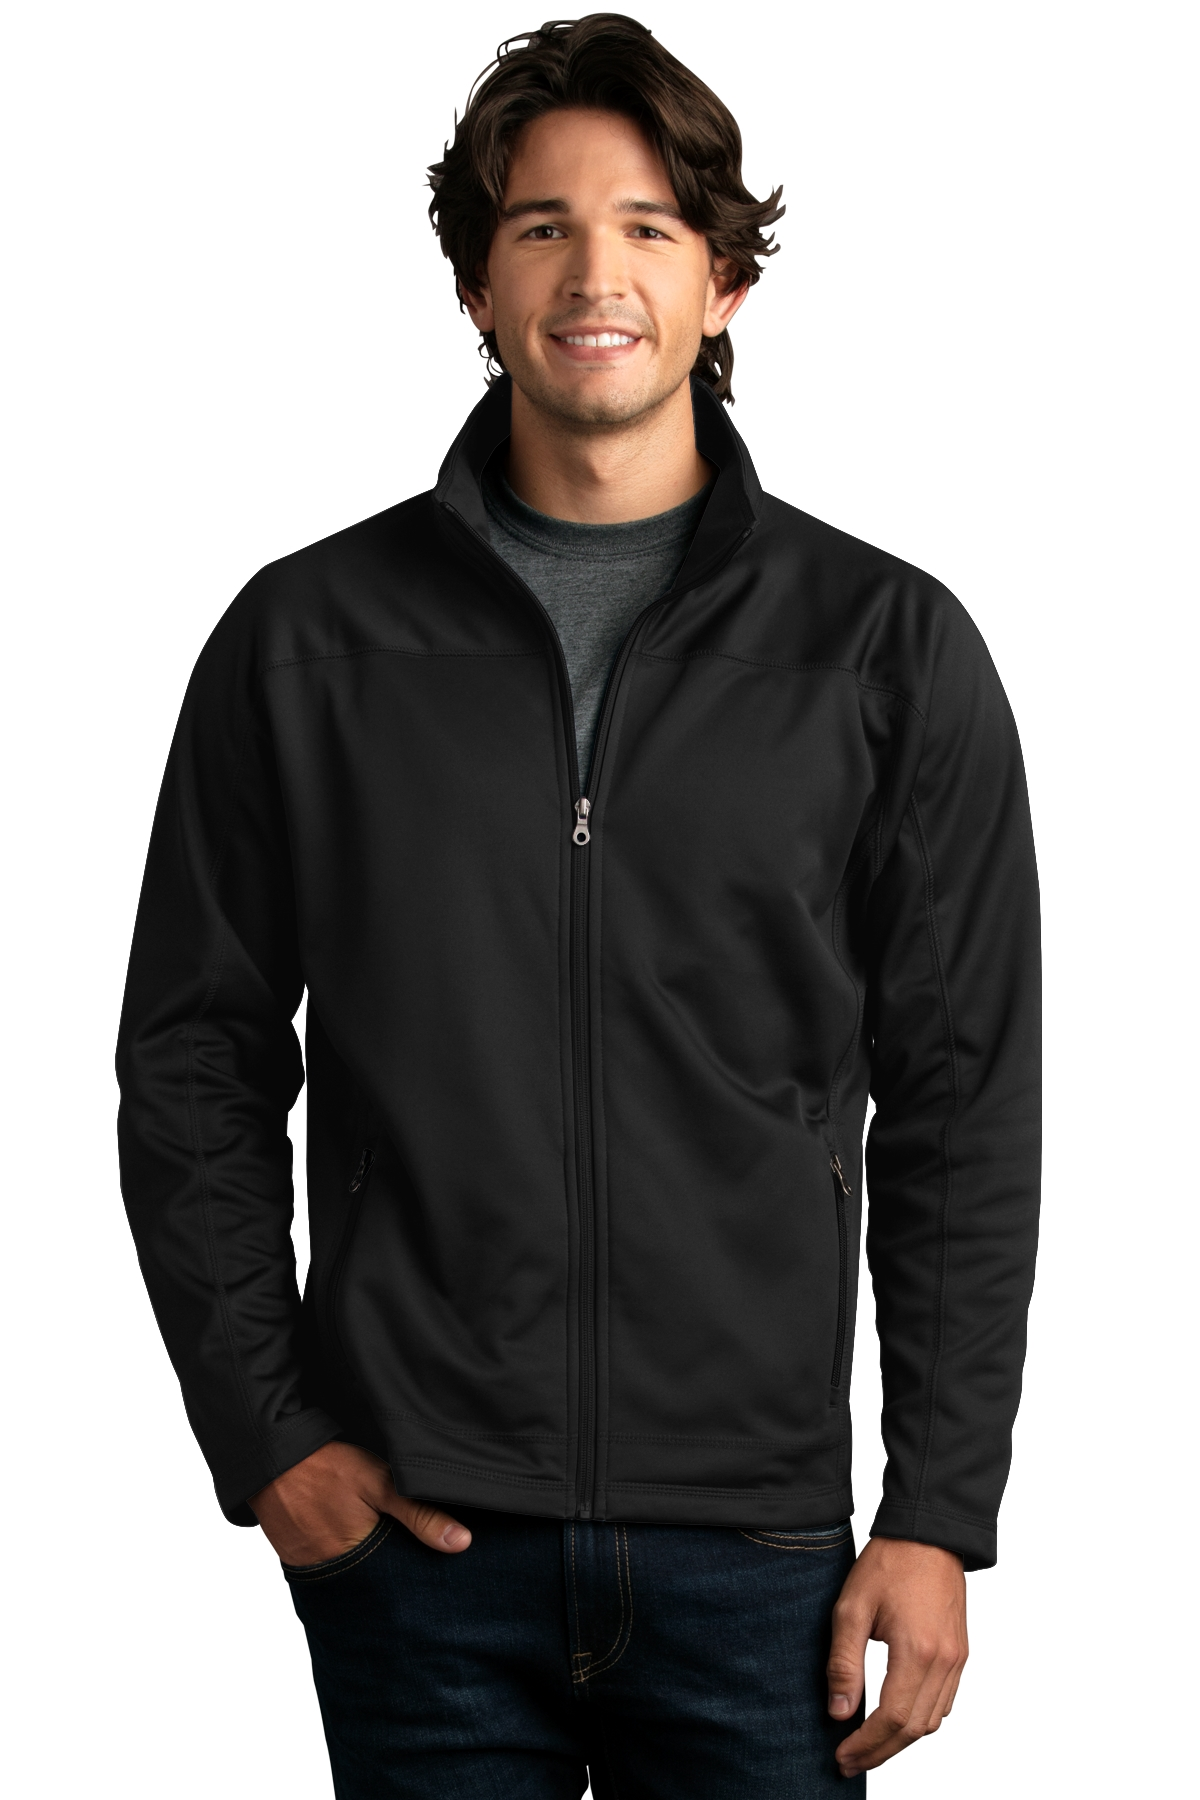 Vantage 3275 - Brushed Back Micro-Fleece Full-Zip Jacket